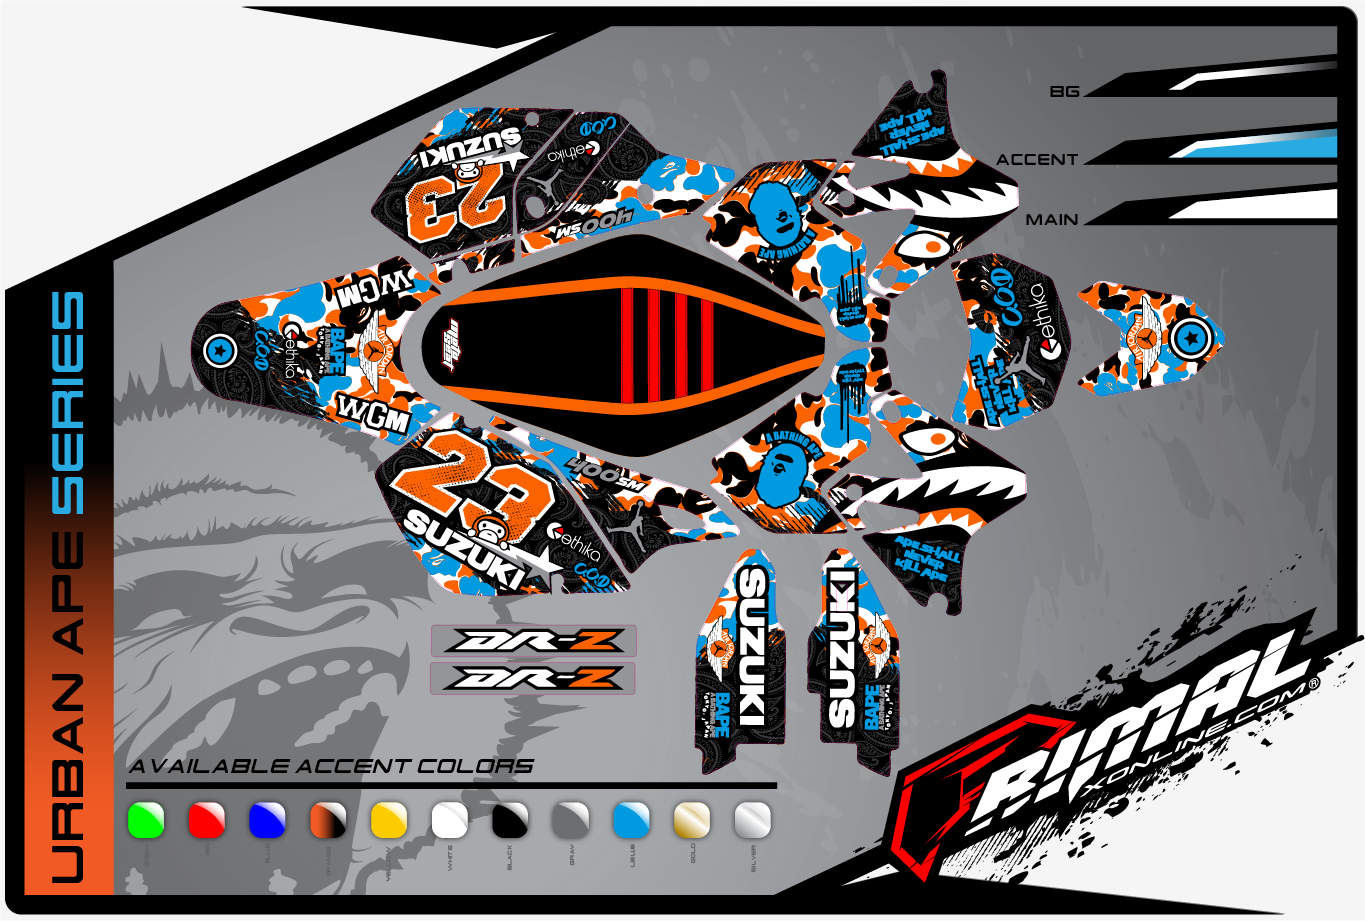 SUZUKI DRZ 400 GRAPHICS PRIMAL X SUPERMOTO GRAPHICS BIKELIFE GRAPHICS DRZ (URBAN APE SERIES)